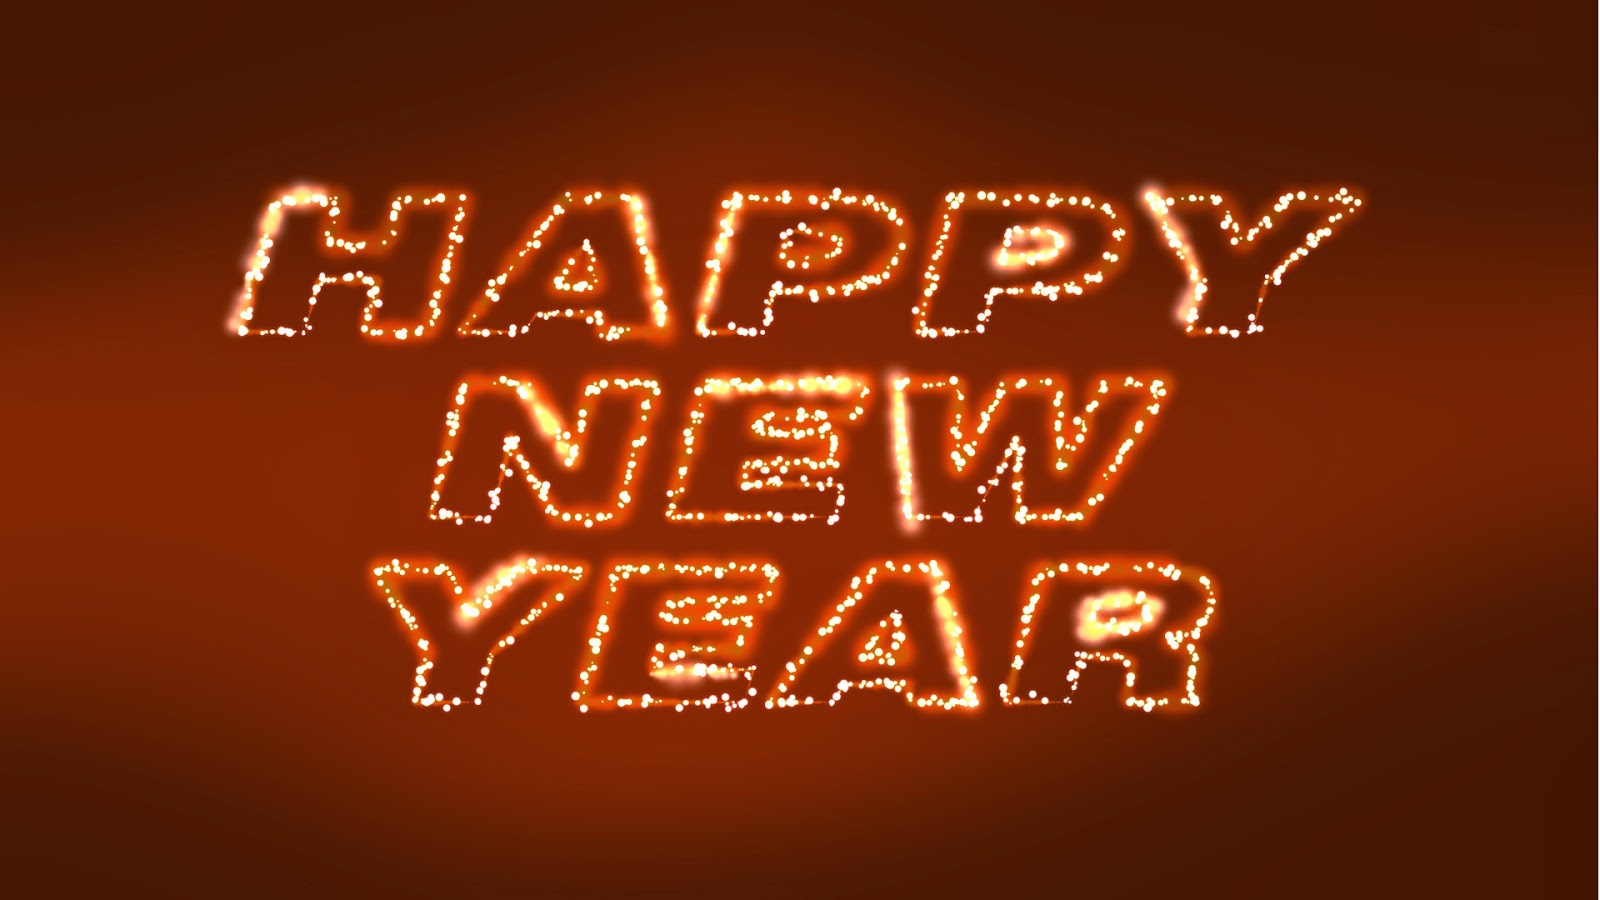 happy new year pc background wallpaper